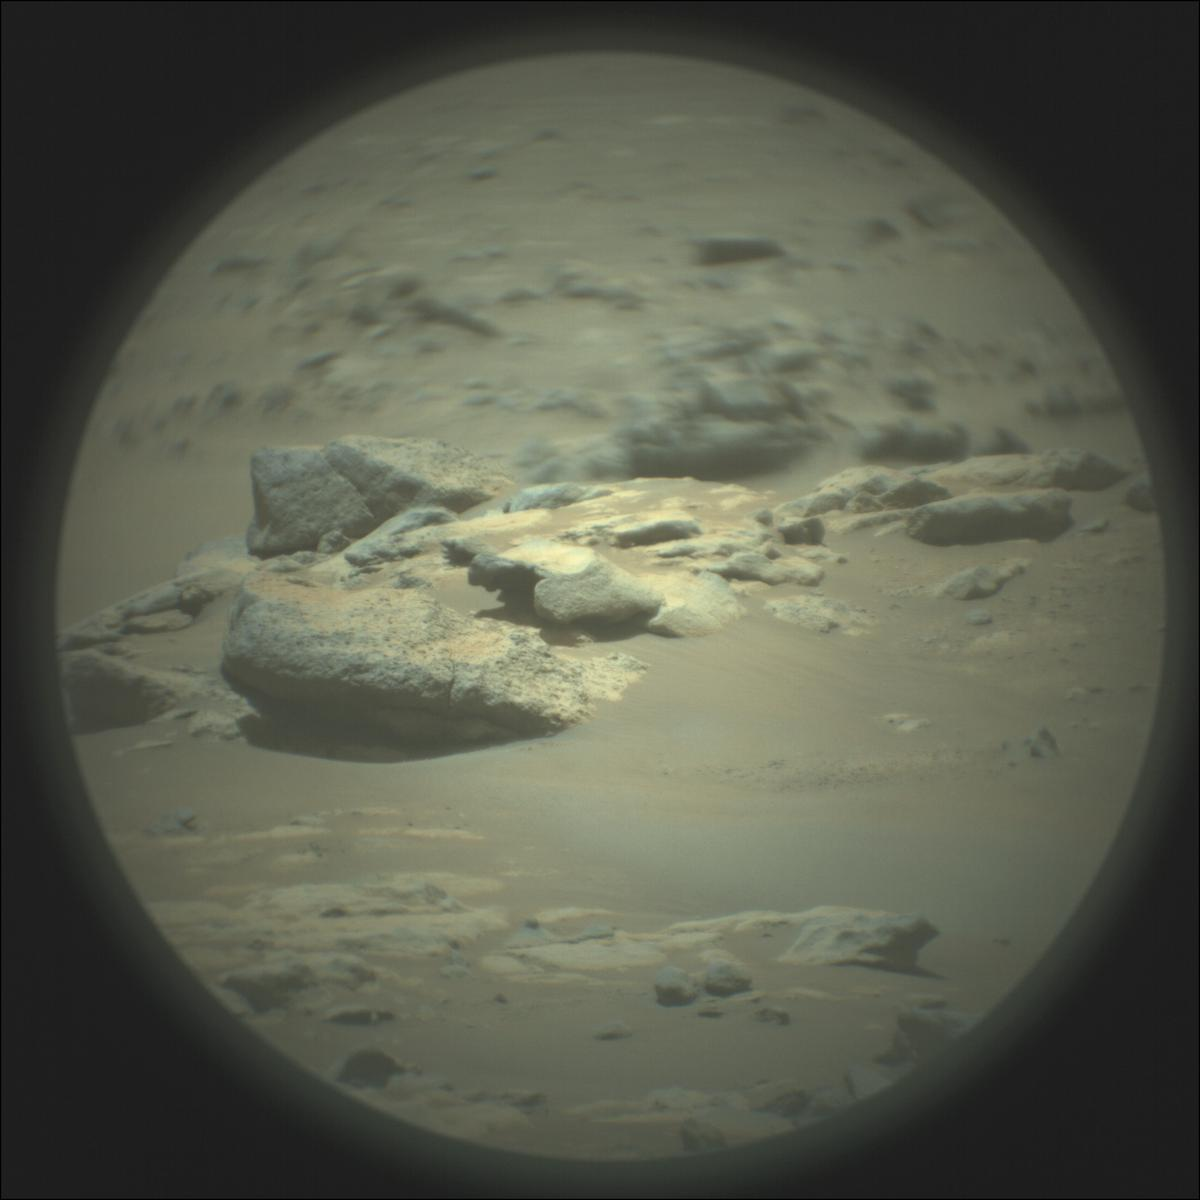 This image was taken by SUPERCAM_RMI onboard NASA's Mars rover Perseverance on Sol 122